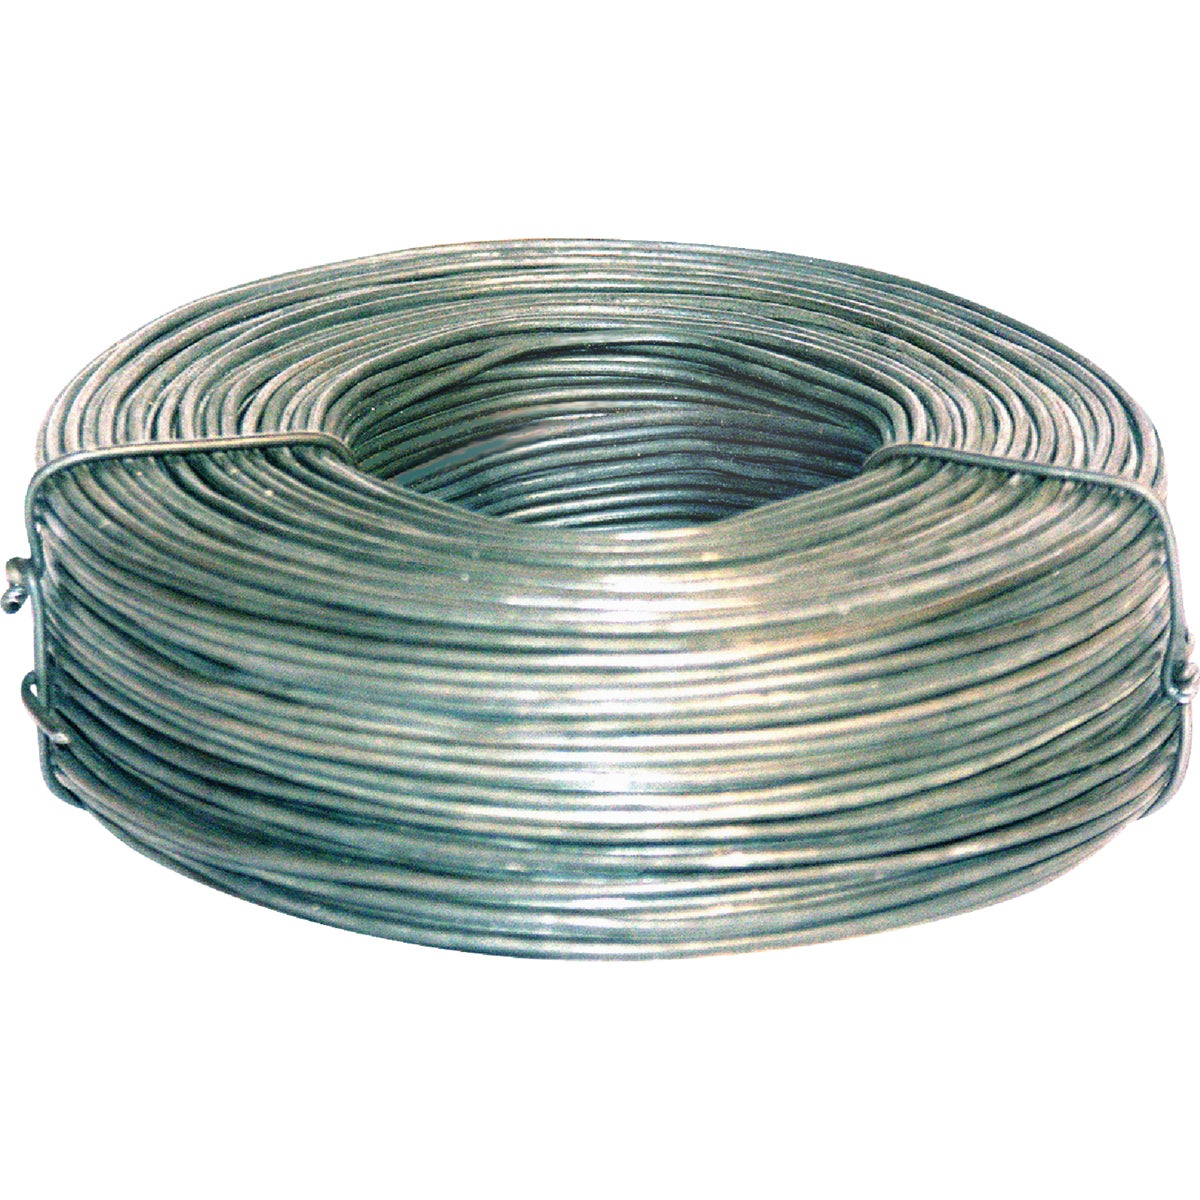 9GA 100# GLV SMOOTH WIRE - SWG9100 by Primesource